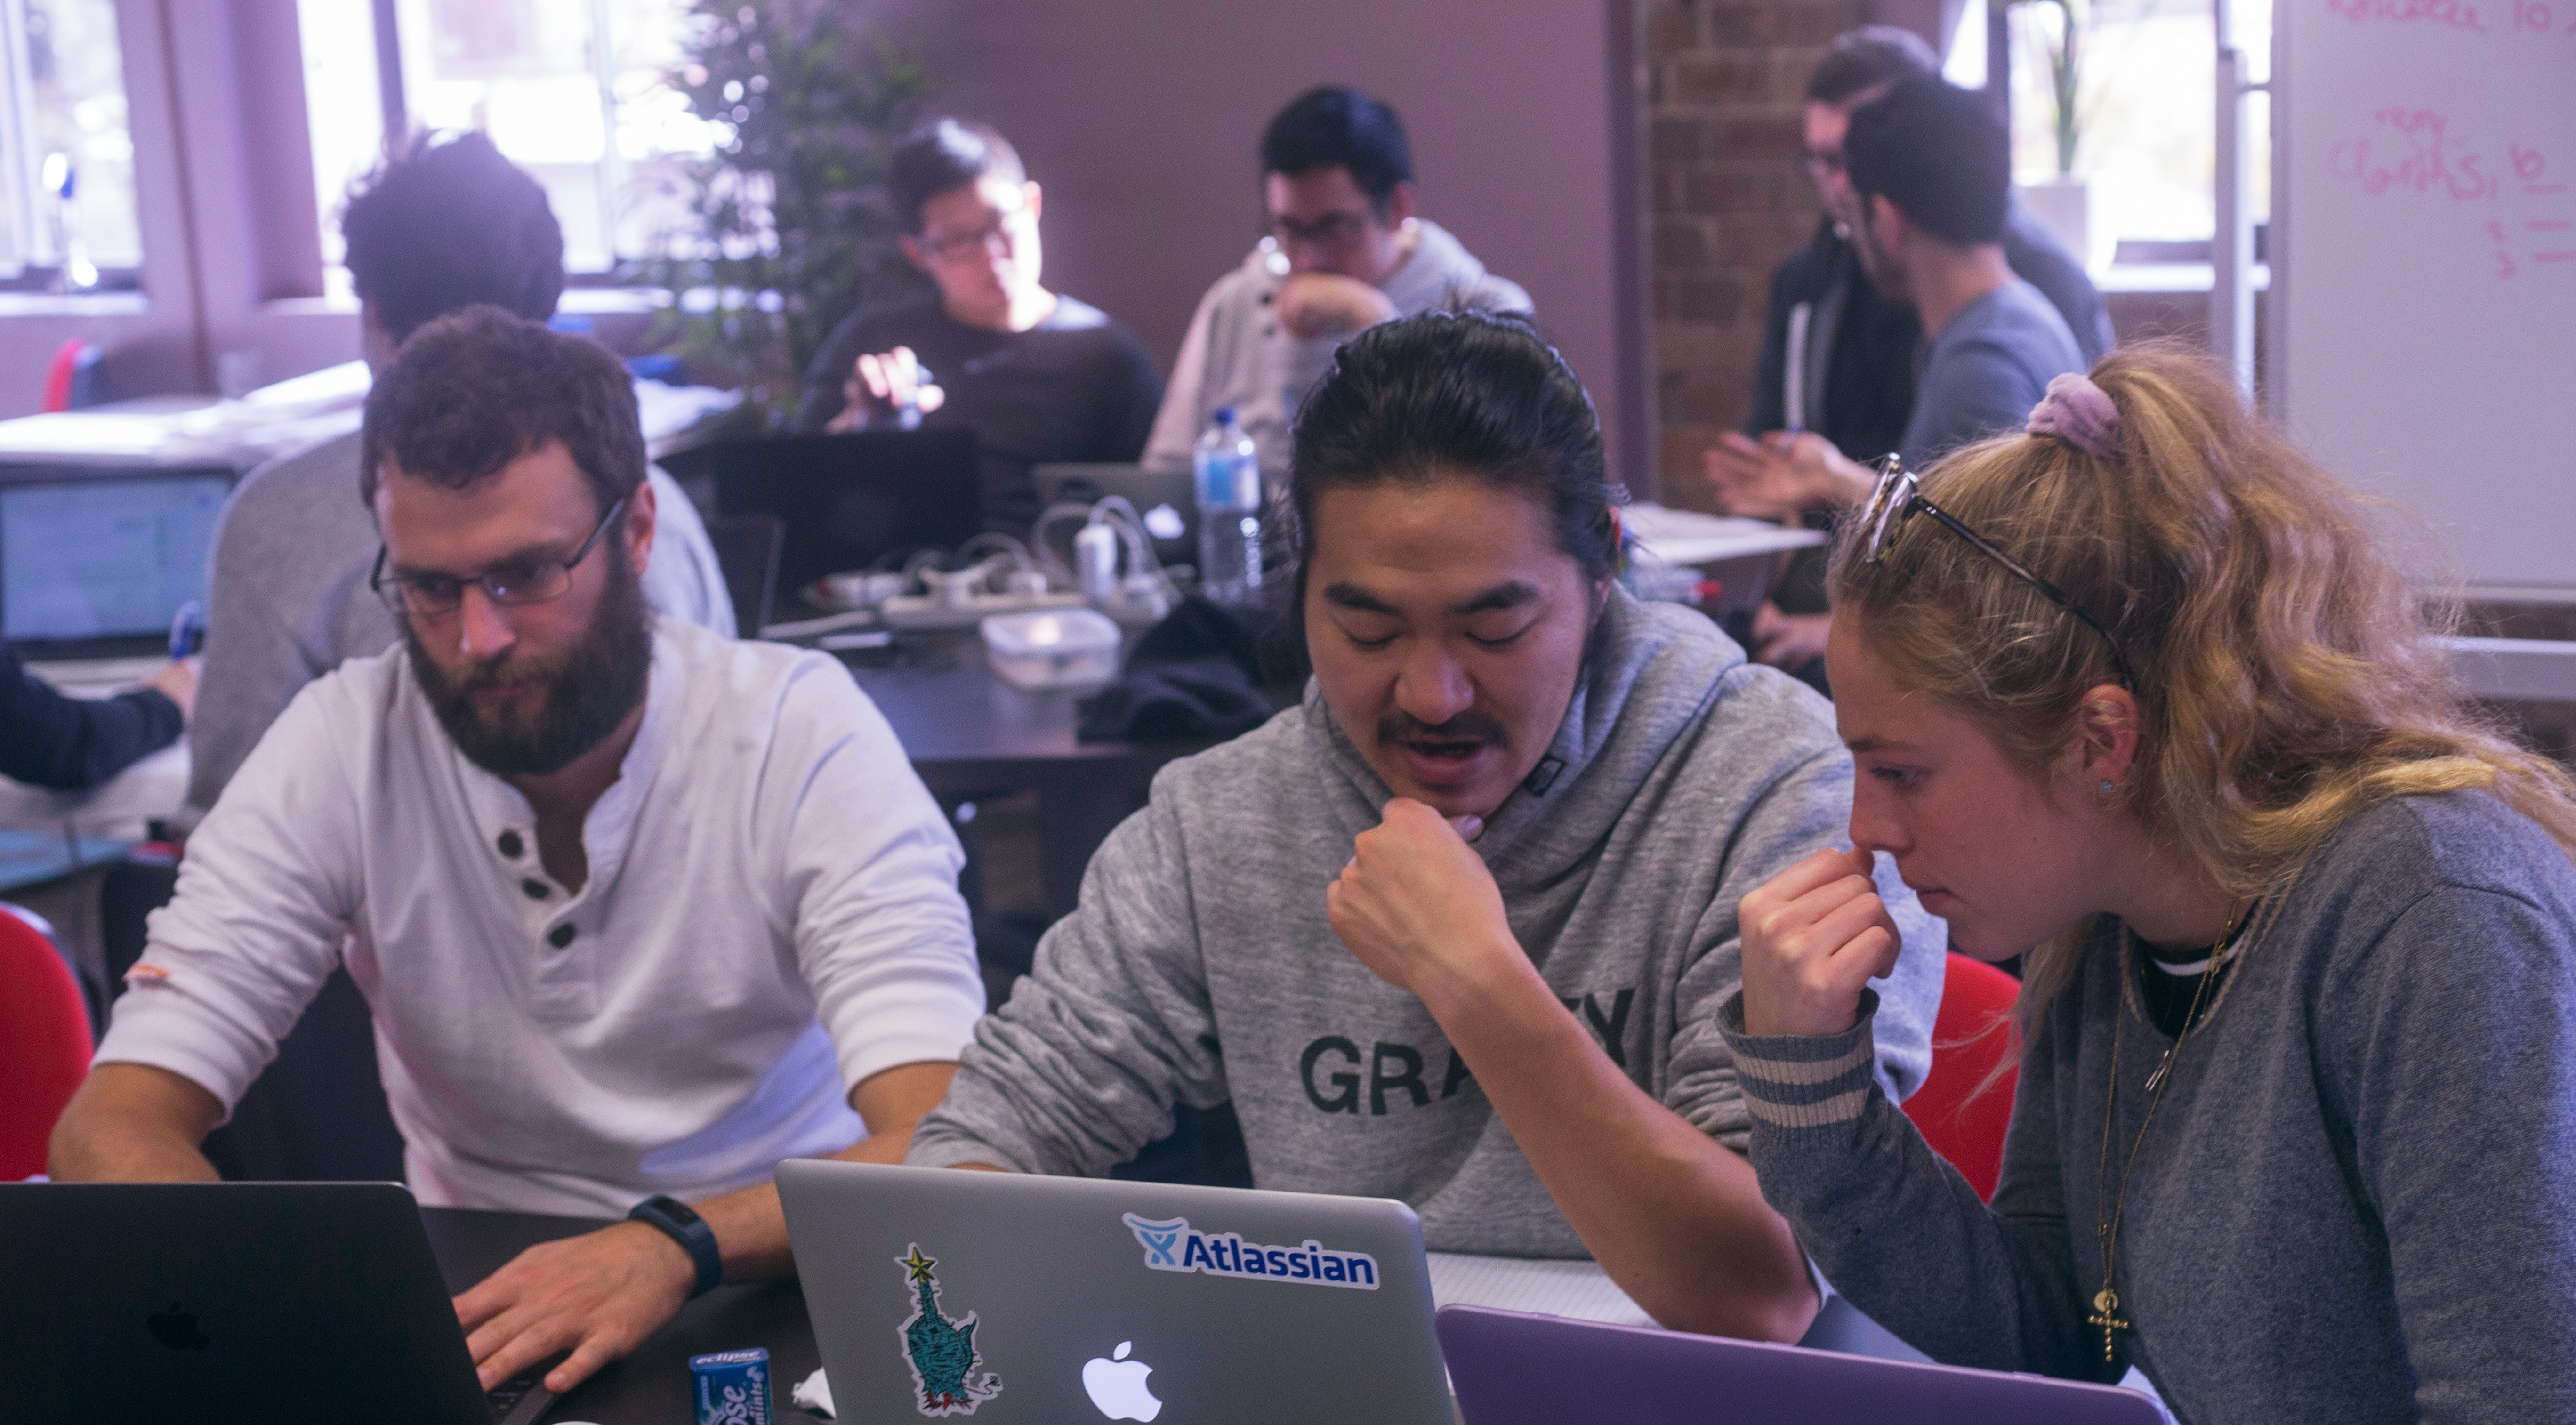 Featured image: Are coding bootcamps worth it? - Read full post: Are coding bootcamps worth it?